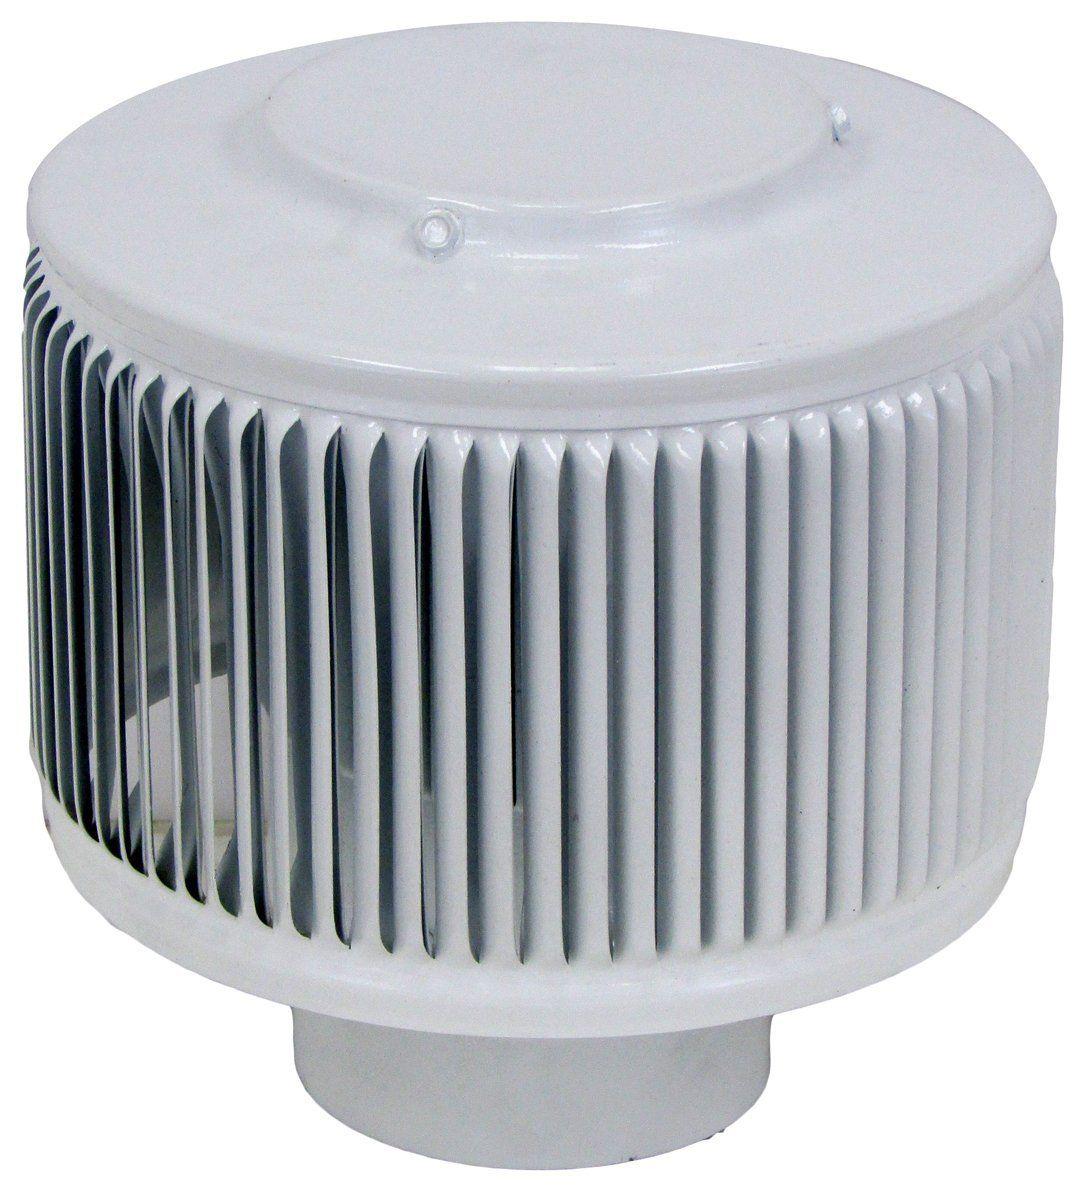 Aura Pvc Pipe Cap 3 Inch Diameter White Find Out More About The Great Product At Image Link